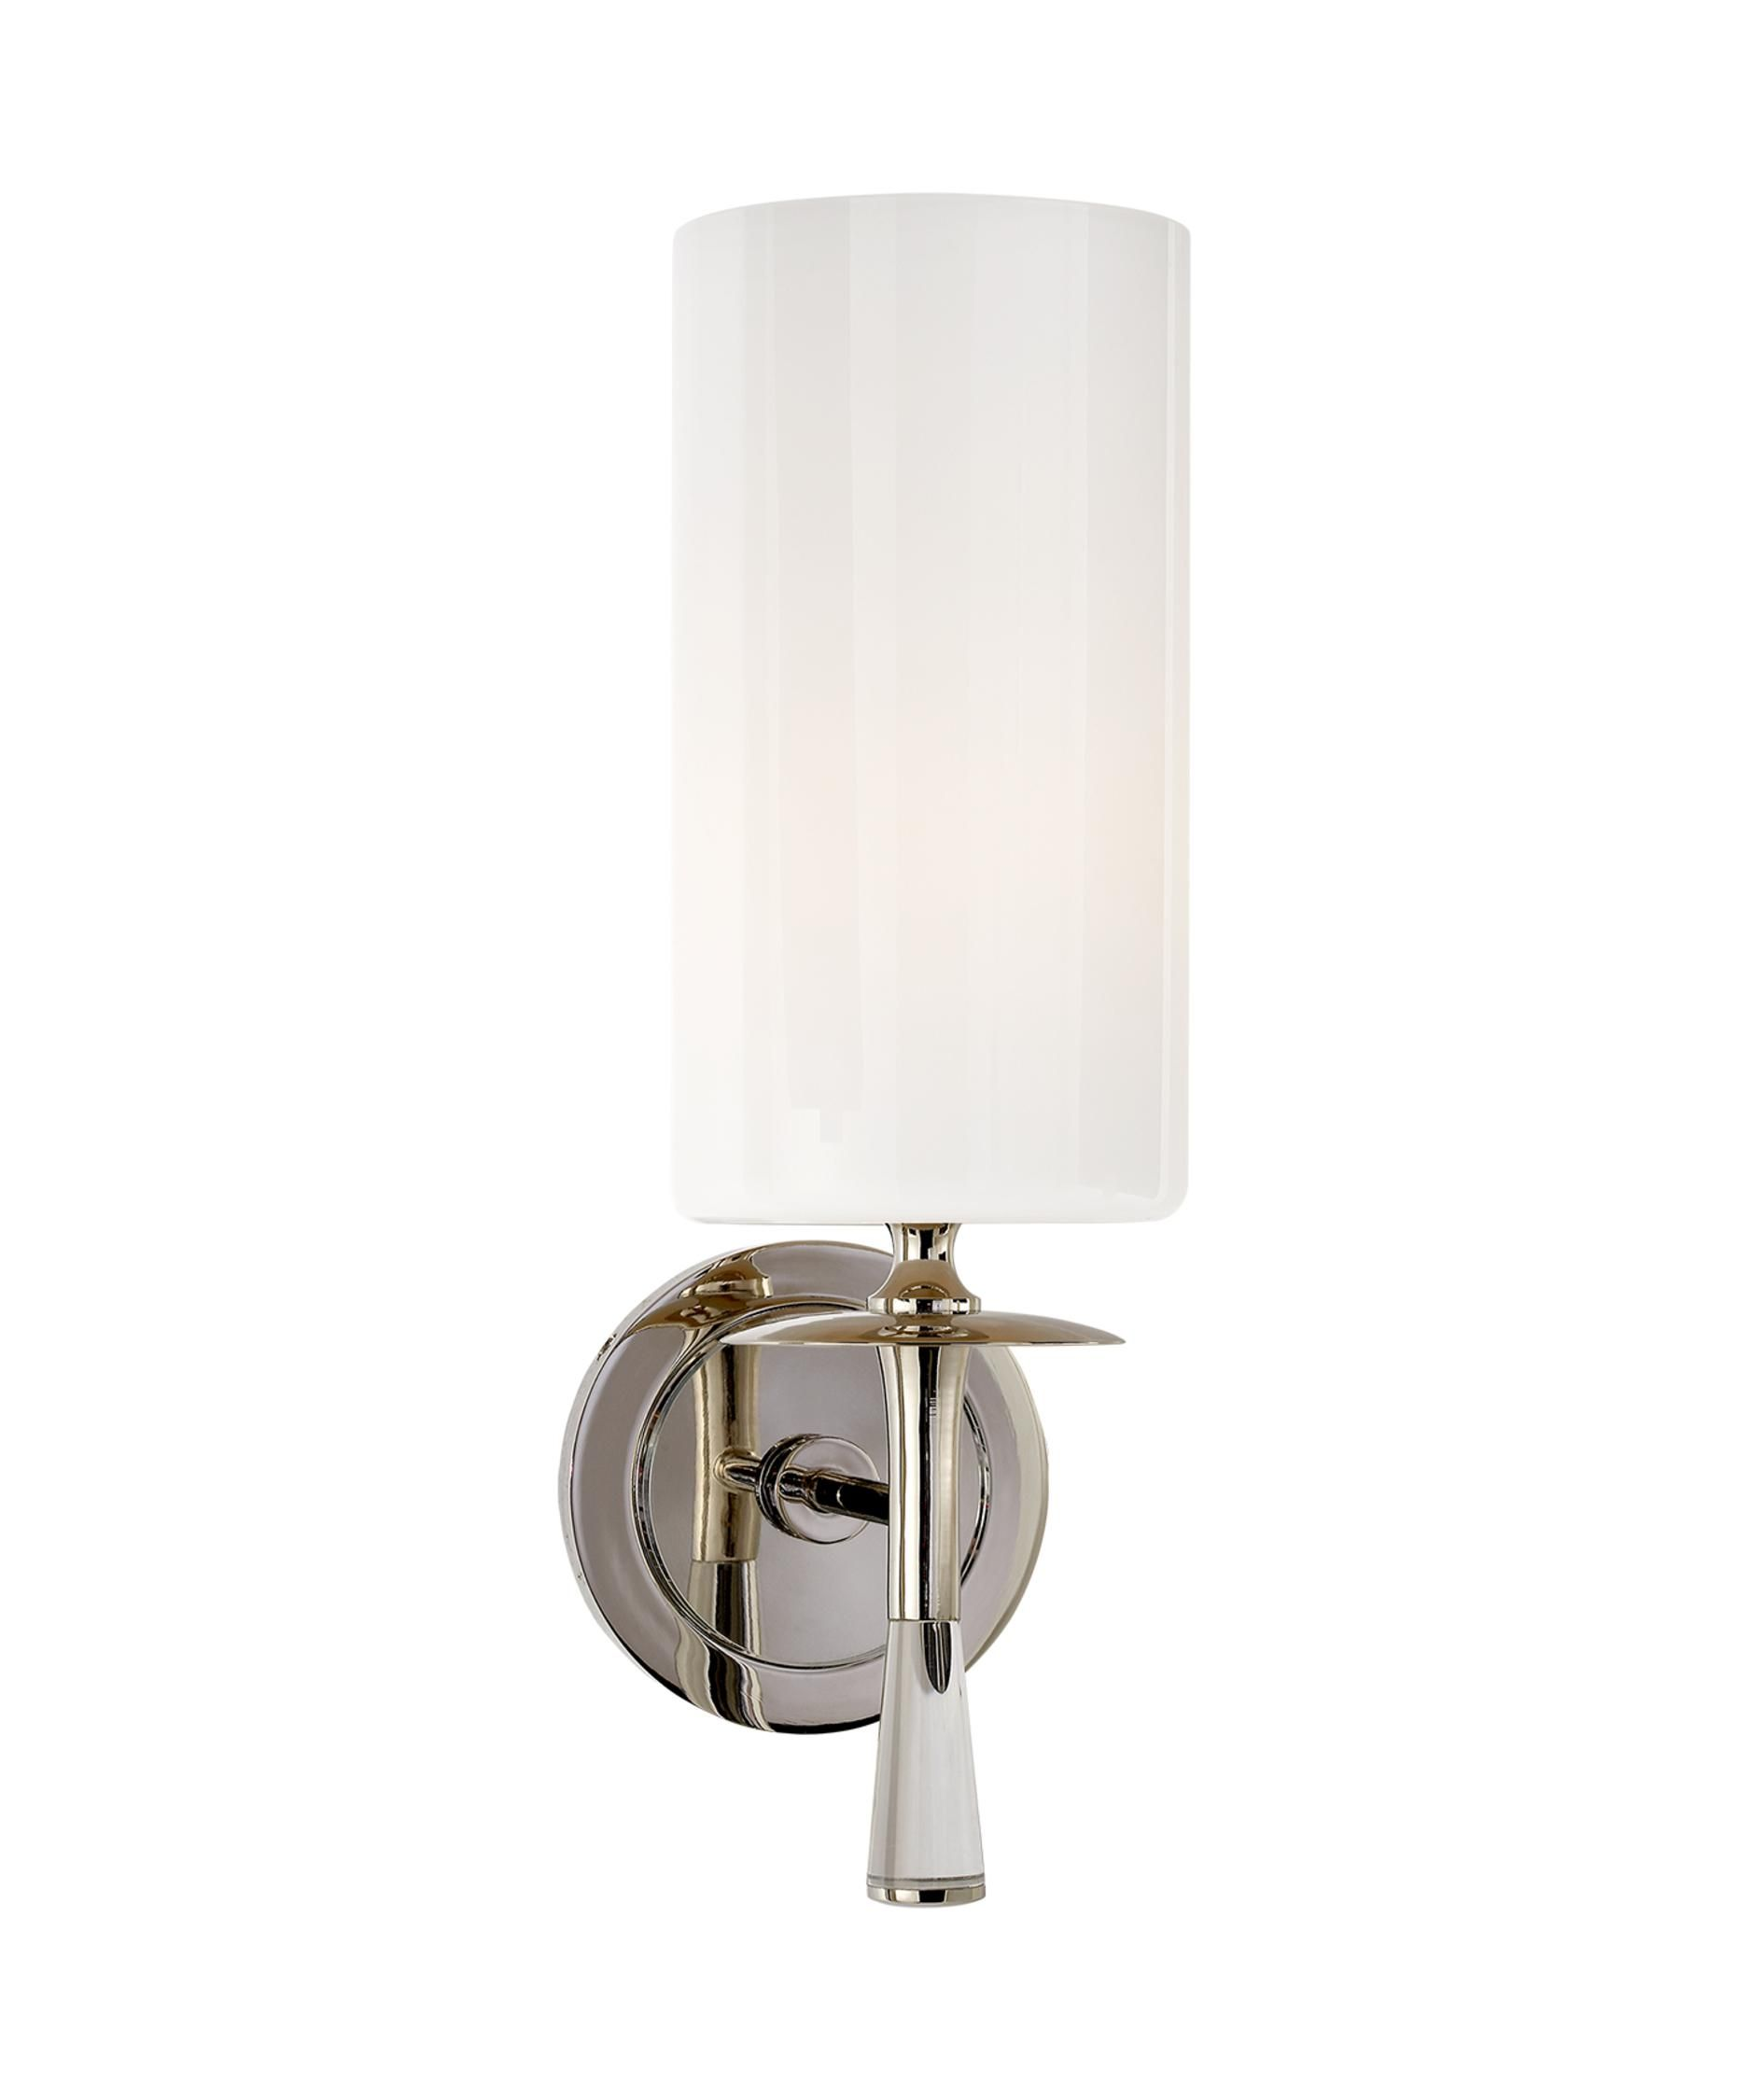 Aerin Drunmore 14 Inch Wall Sconce Capitol Lighting Visual Comfort Wall Sconces Sconces